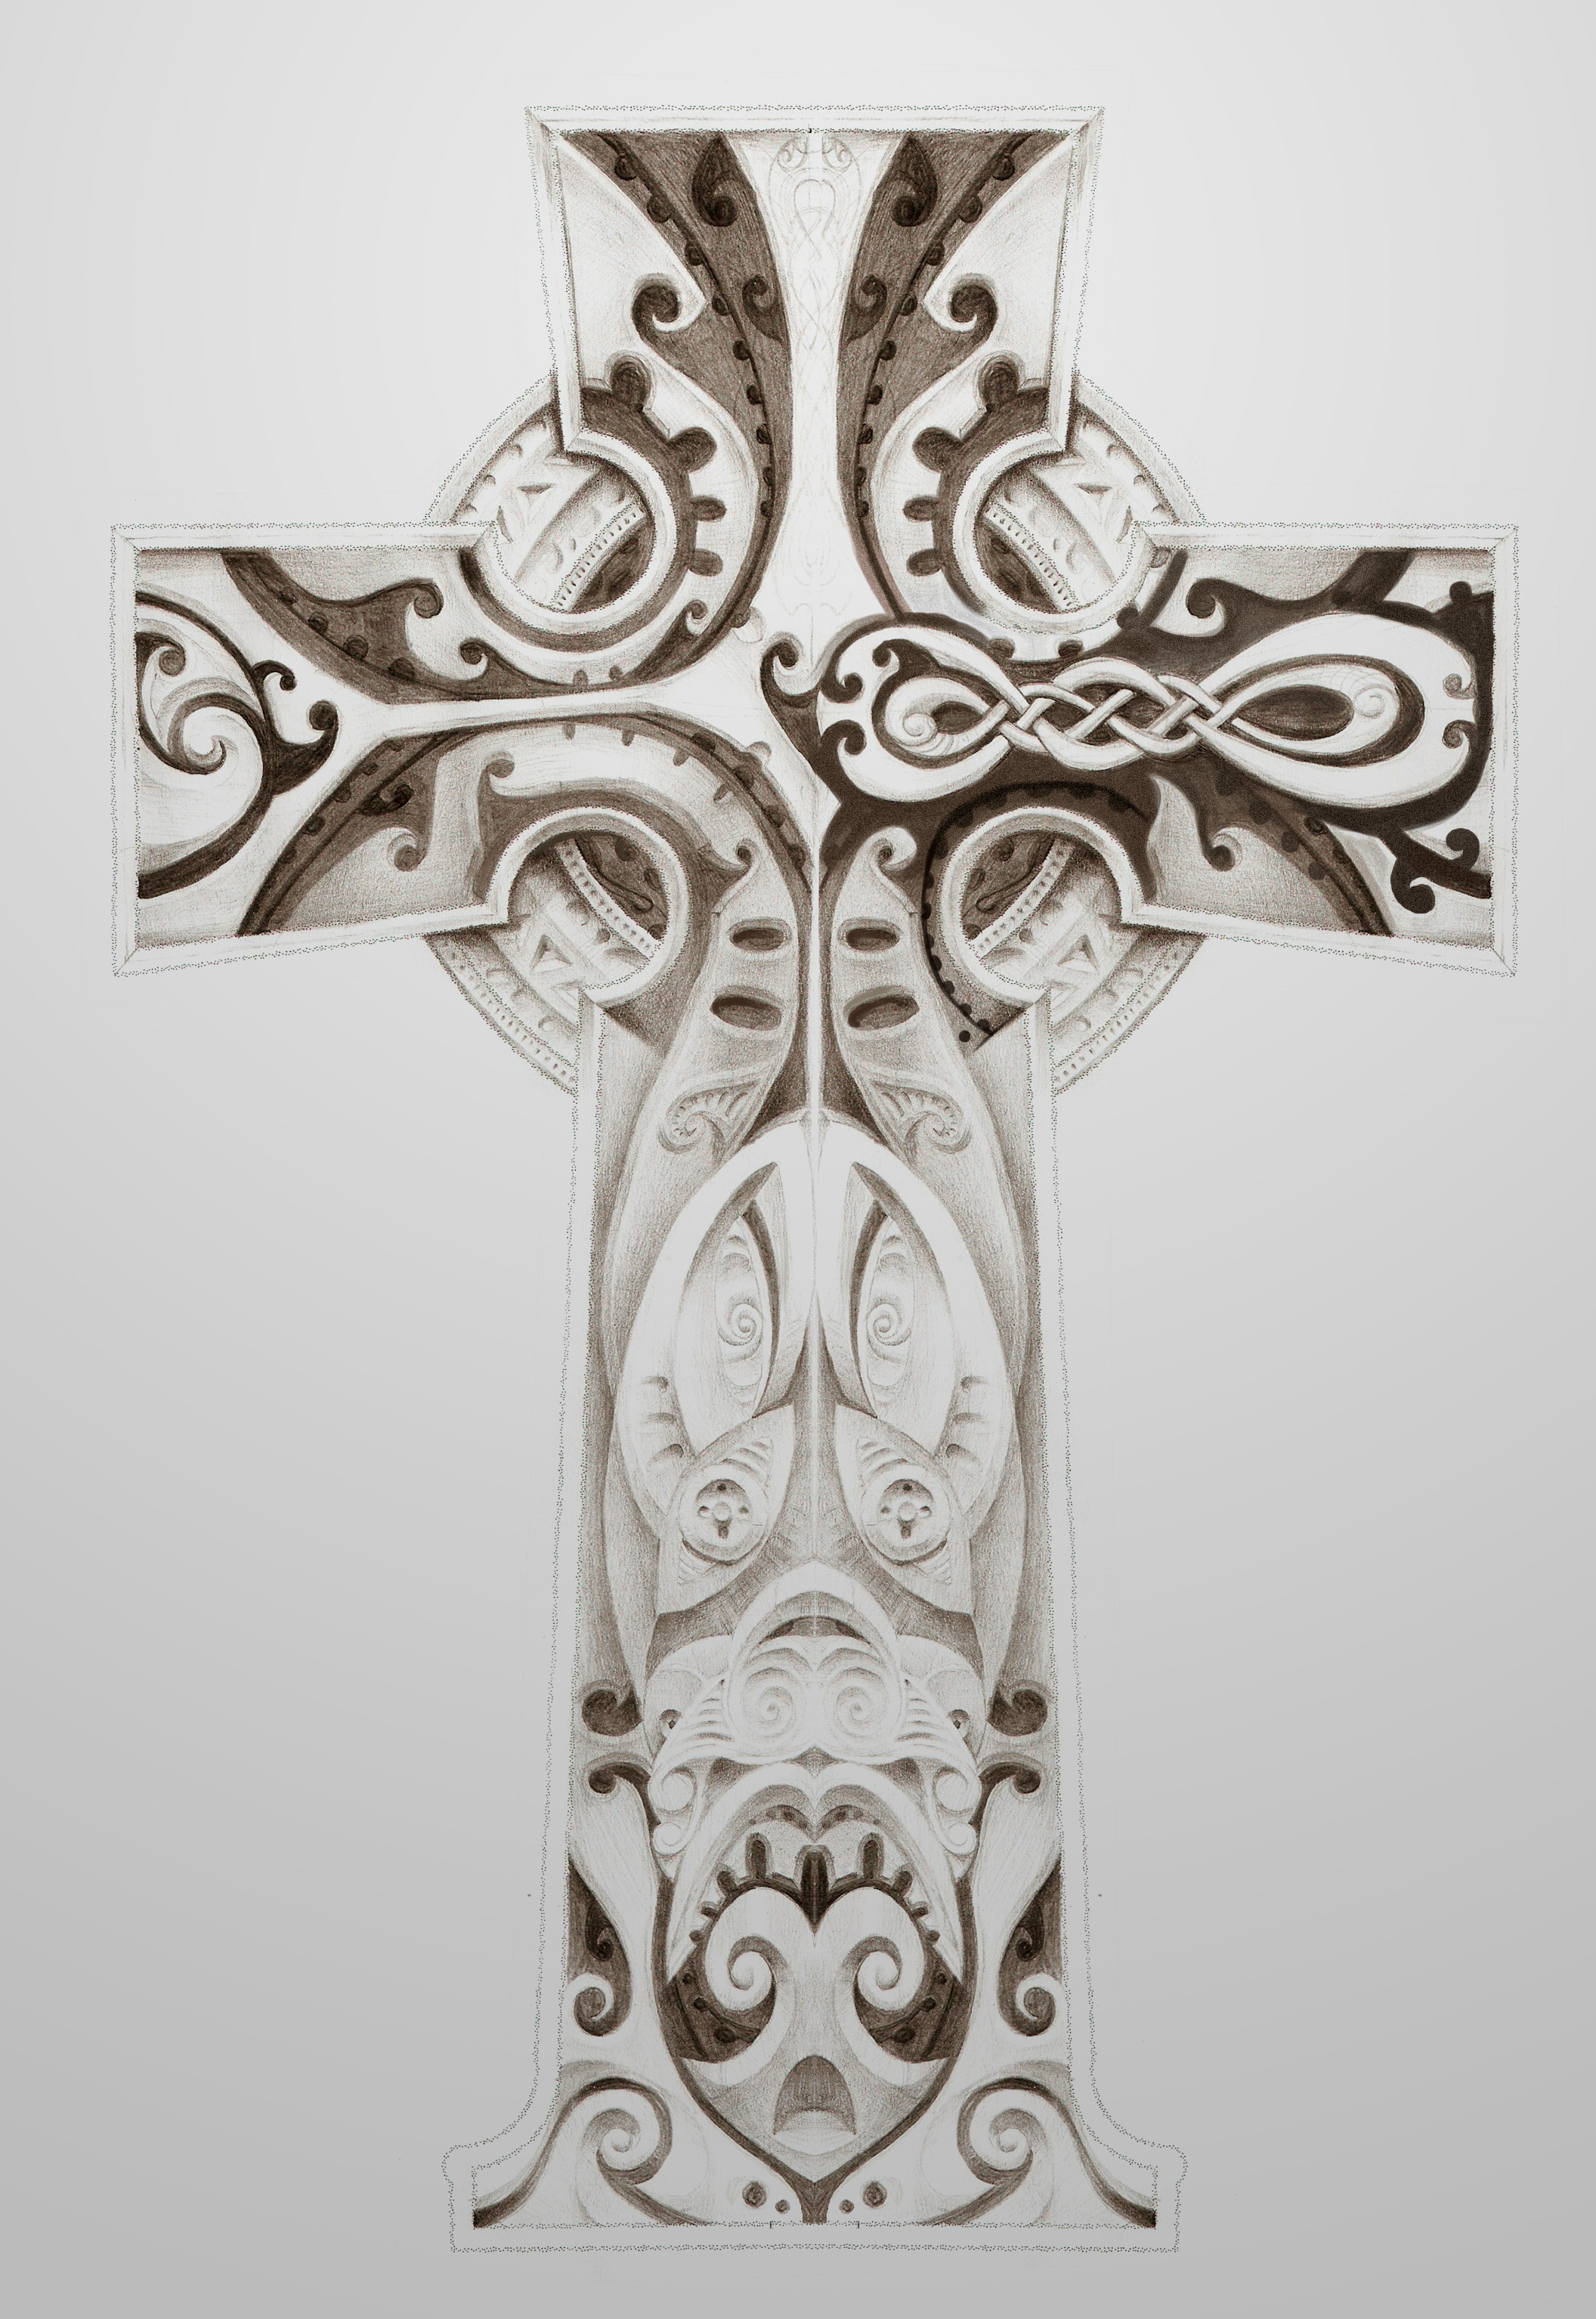 Imaginary Celtic/Maori Cross